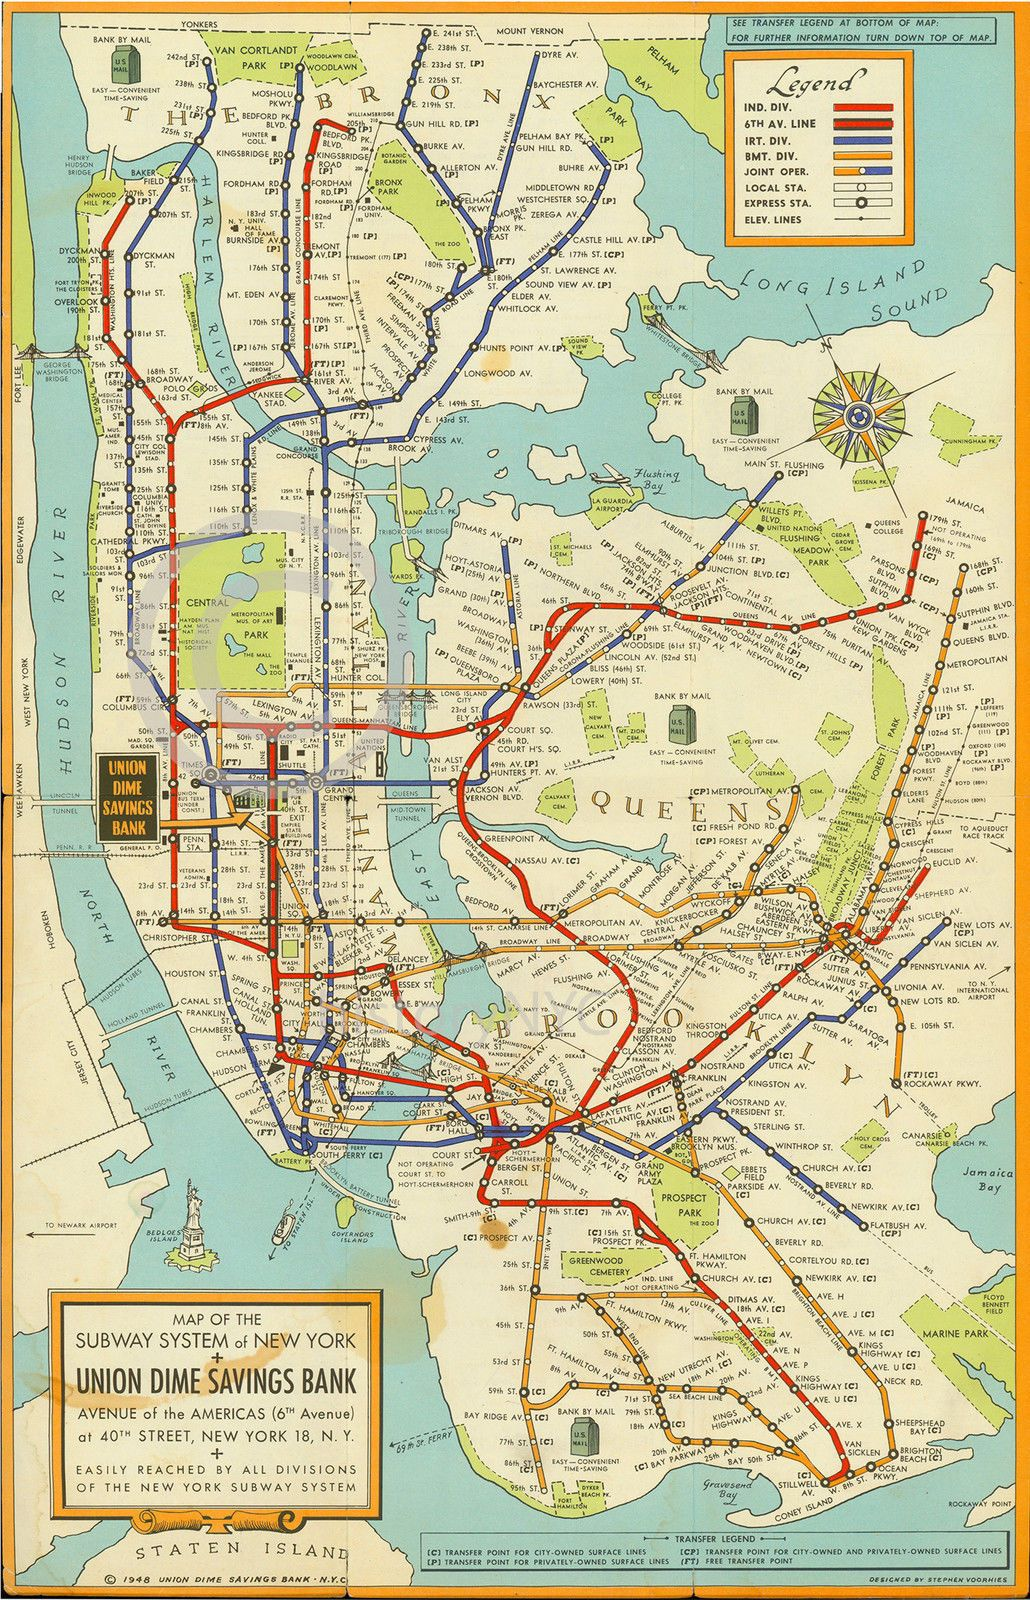 Nyc Subway Map Jpeg.Details About New York City Nyc Manhattan Brooklyn Mta Subway Train